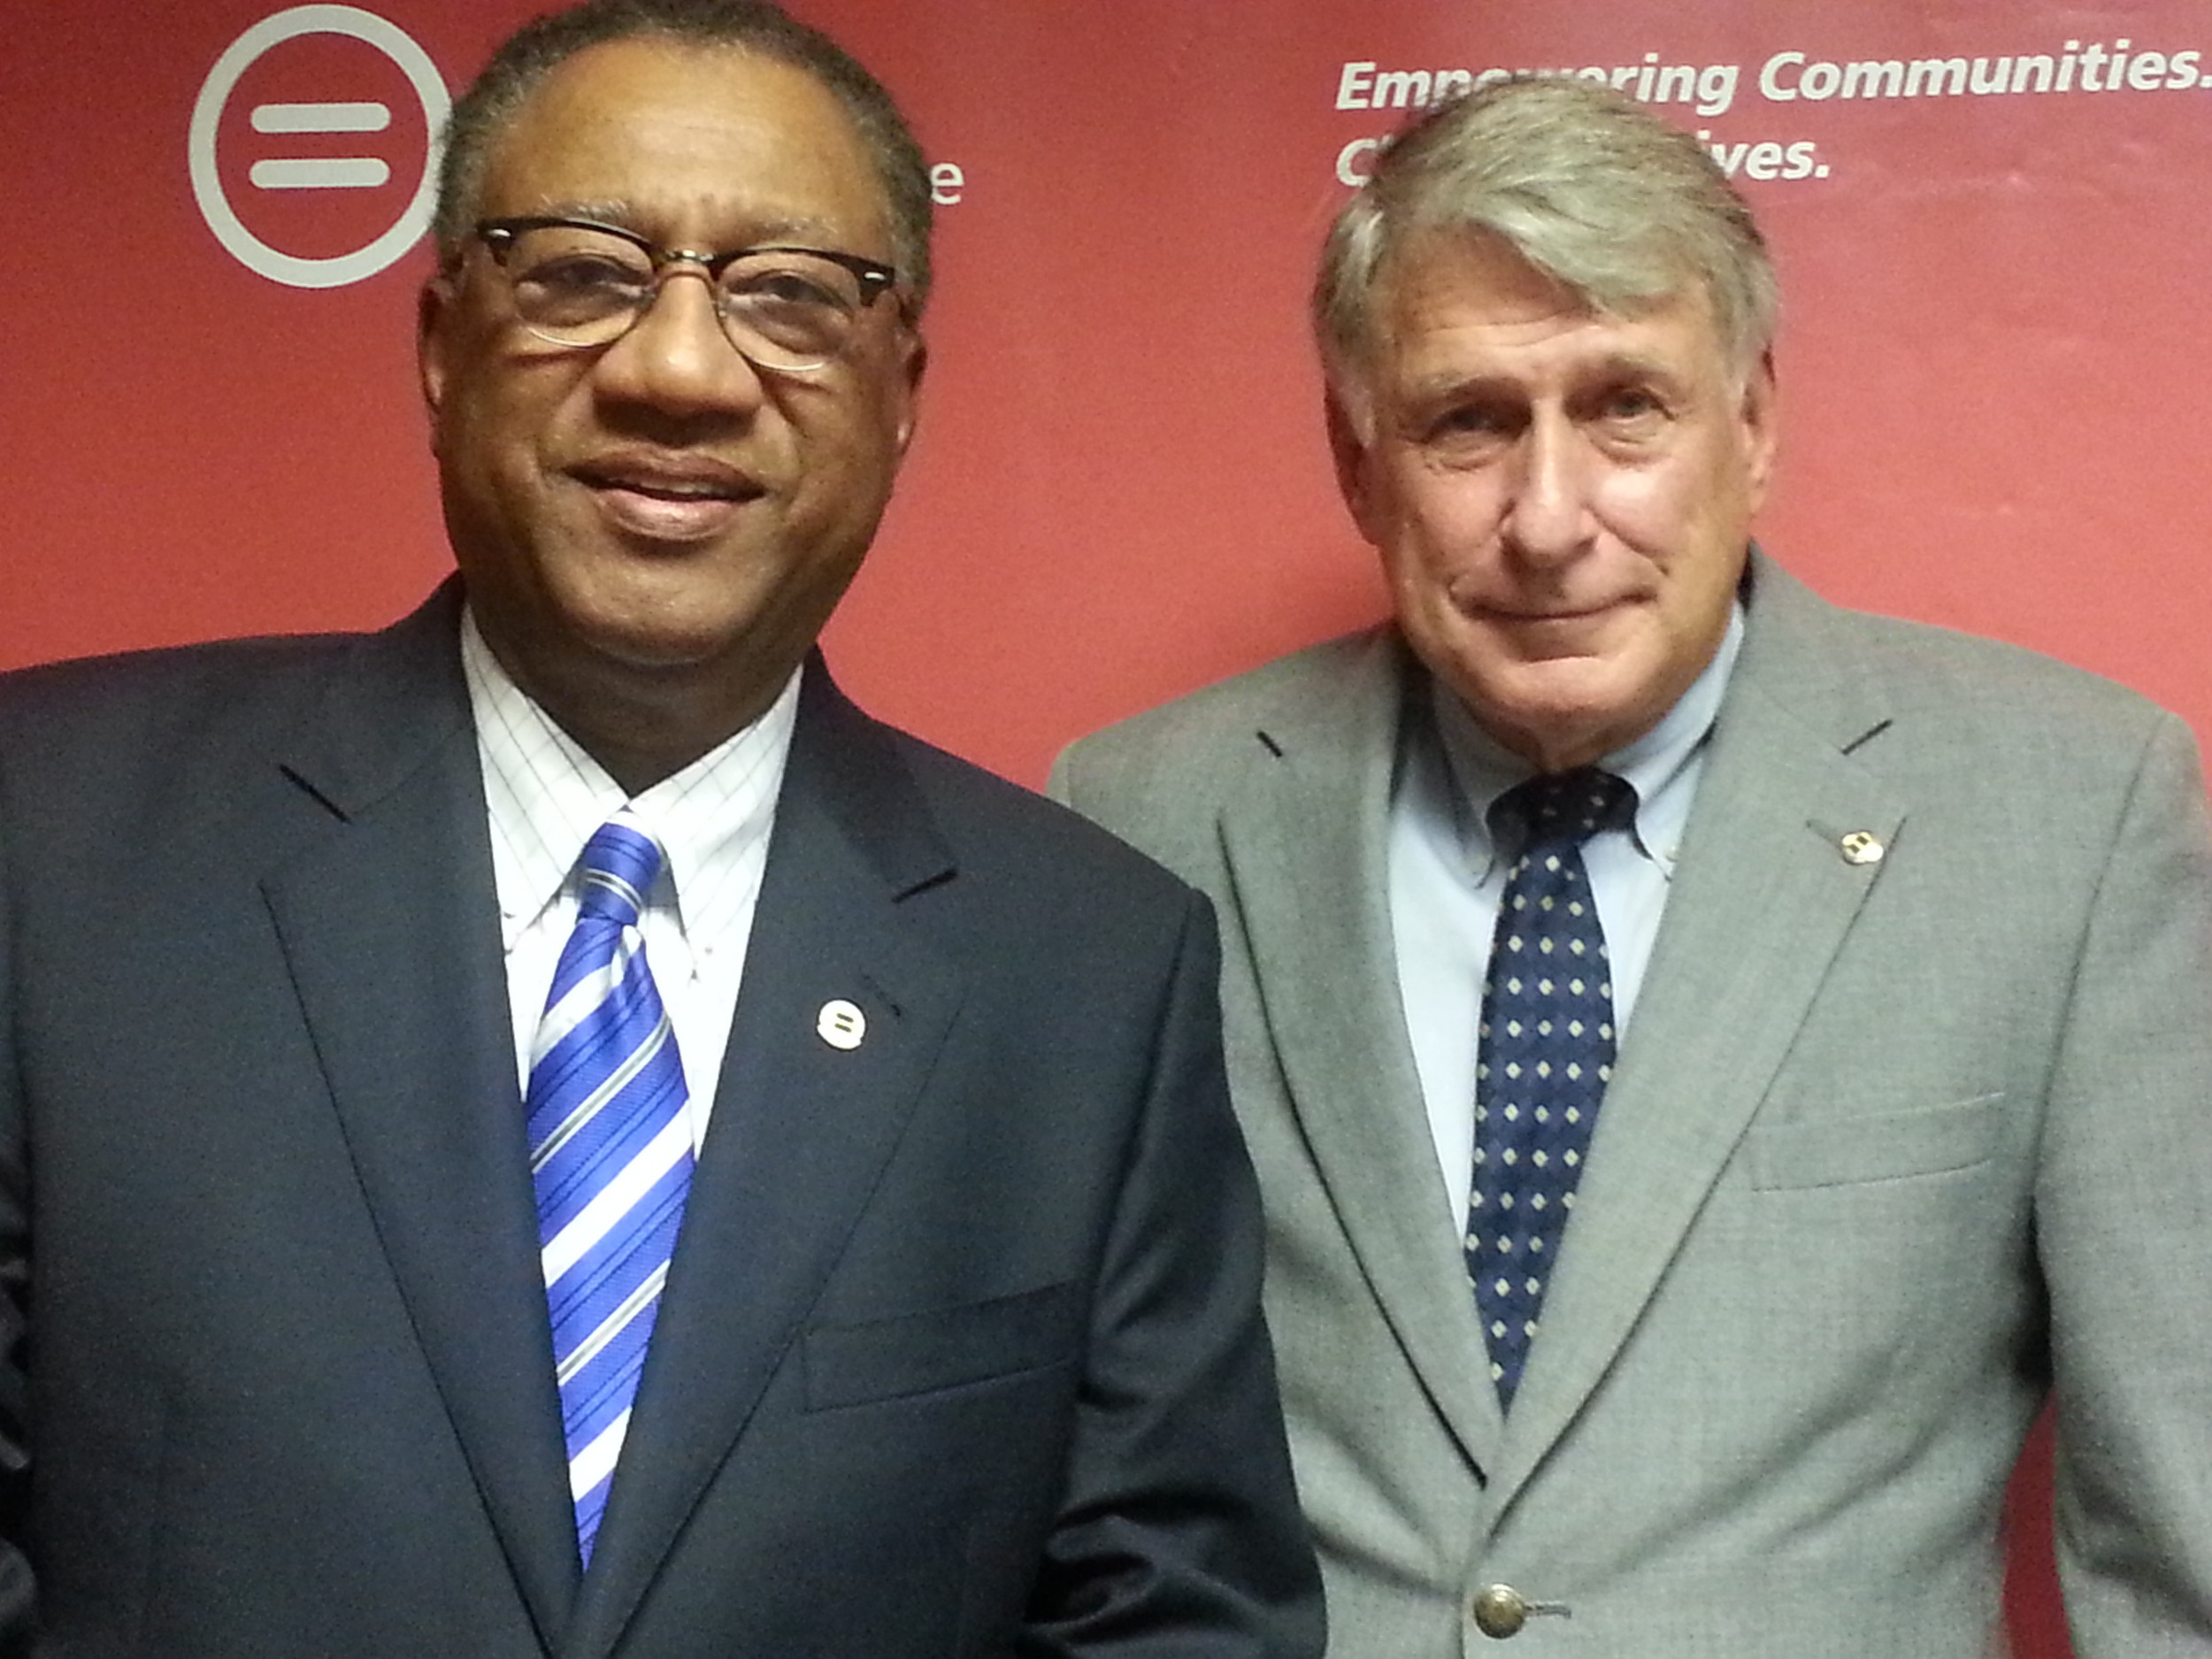 An active community leader, Jacksonville Urban League President Richard Danford (left) served as Chairman of the Board for Florida Coastal Law School and River Region Family Services. Senior Communications Advisor for Jacksonville Urban League, Erick Dittus has advised more than 100 C-level executives on leadership communications.